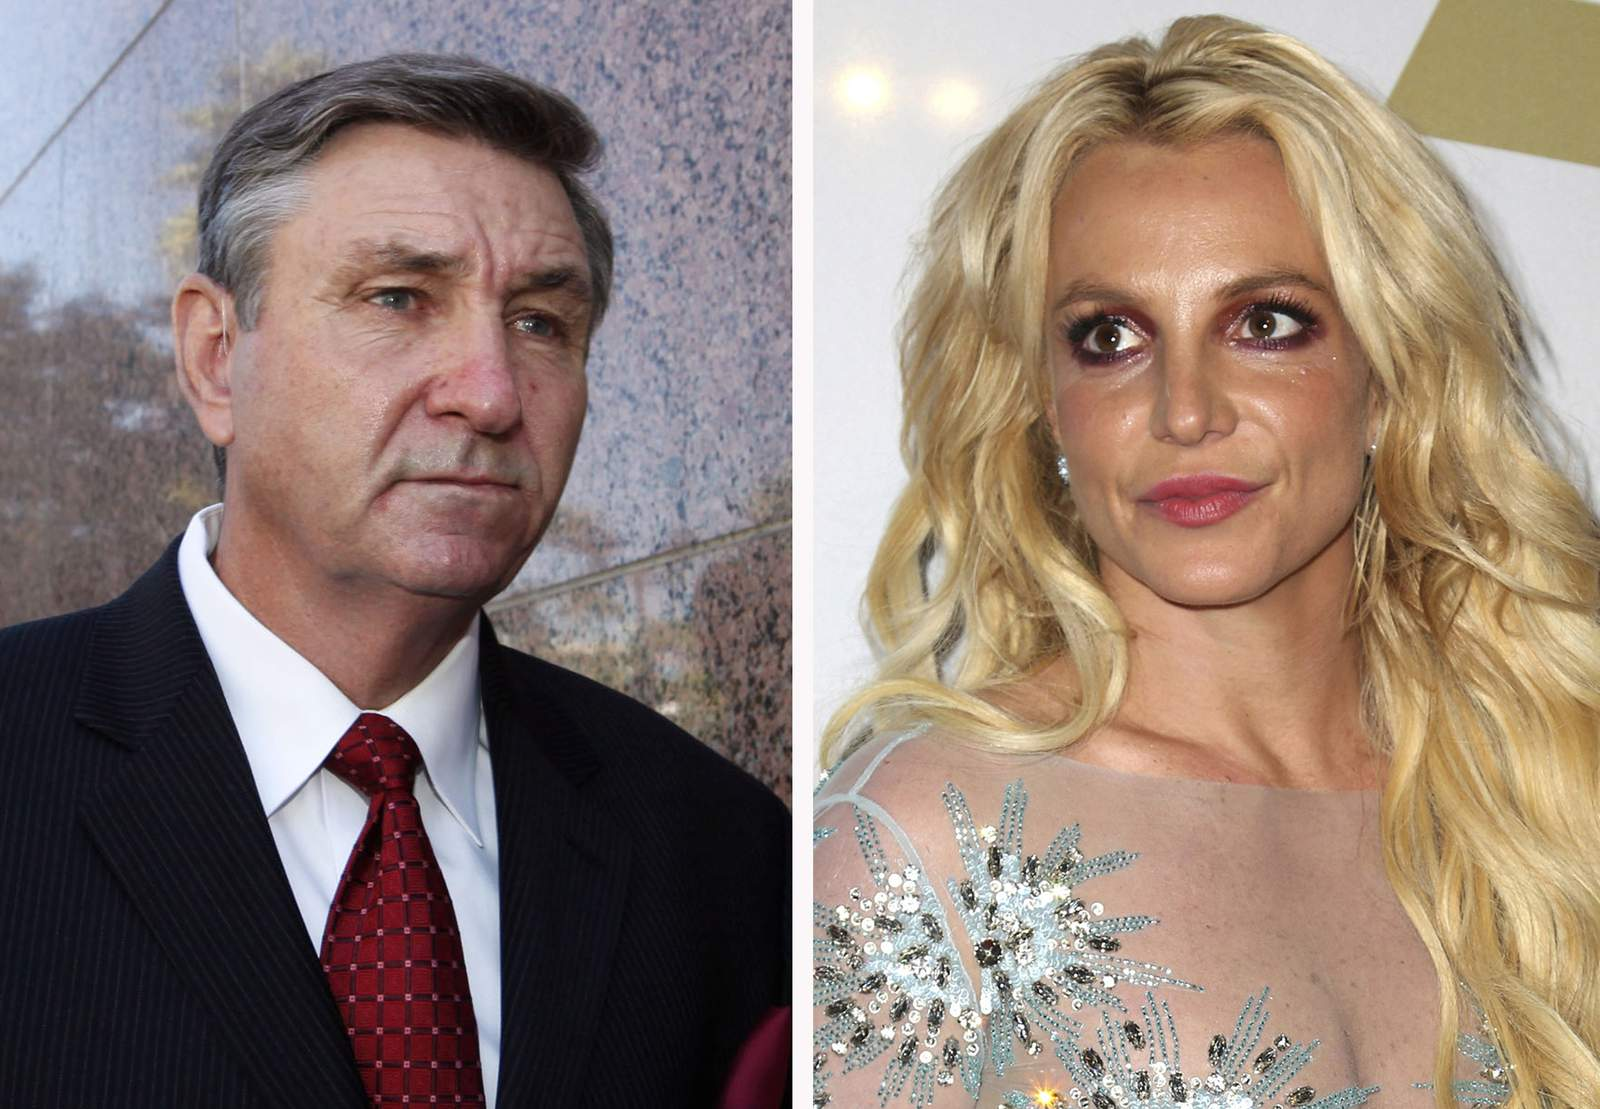 Britney Spears shows love for #FreeBritney in court filing